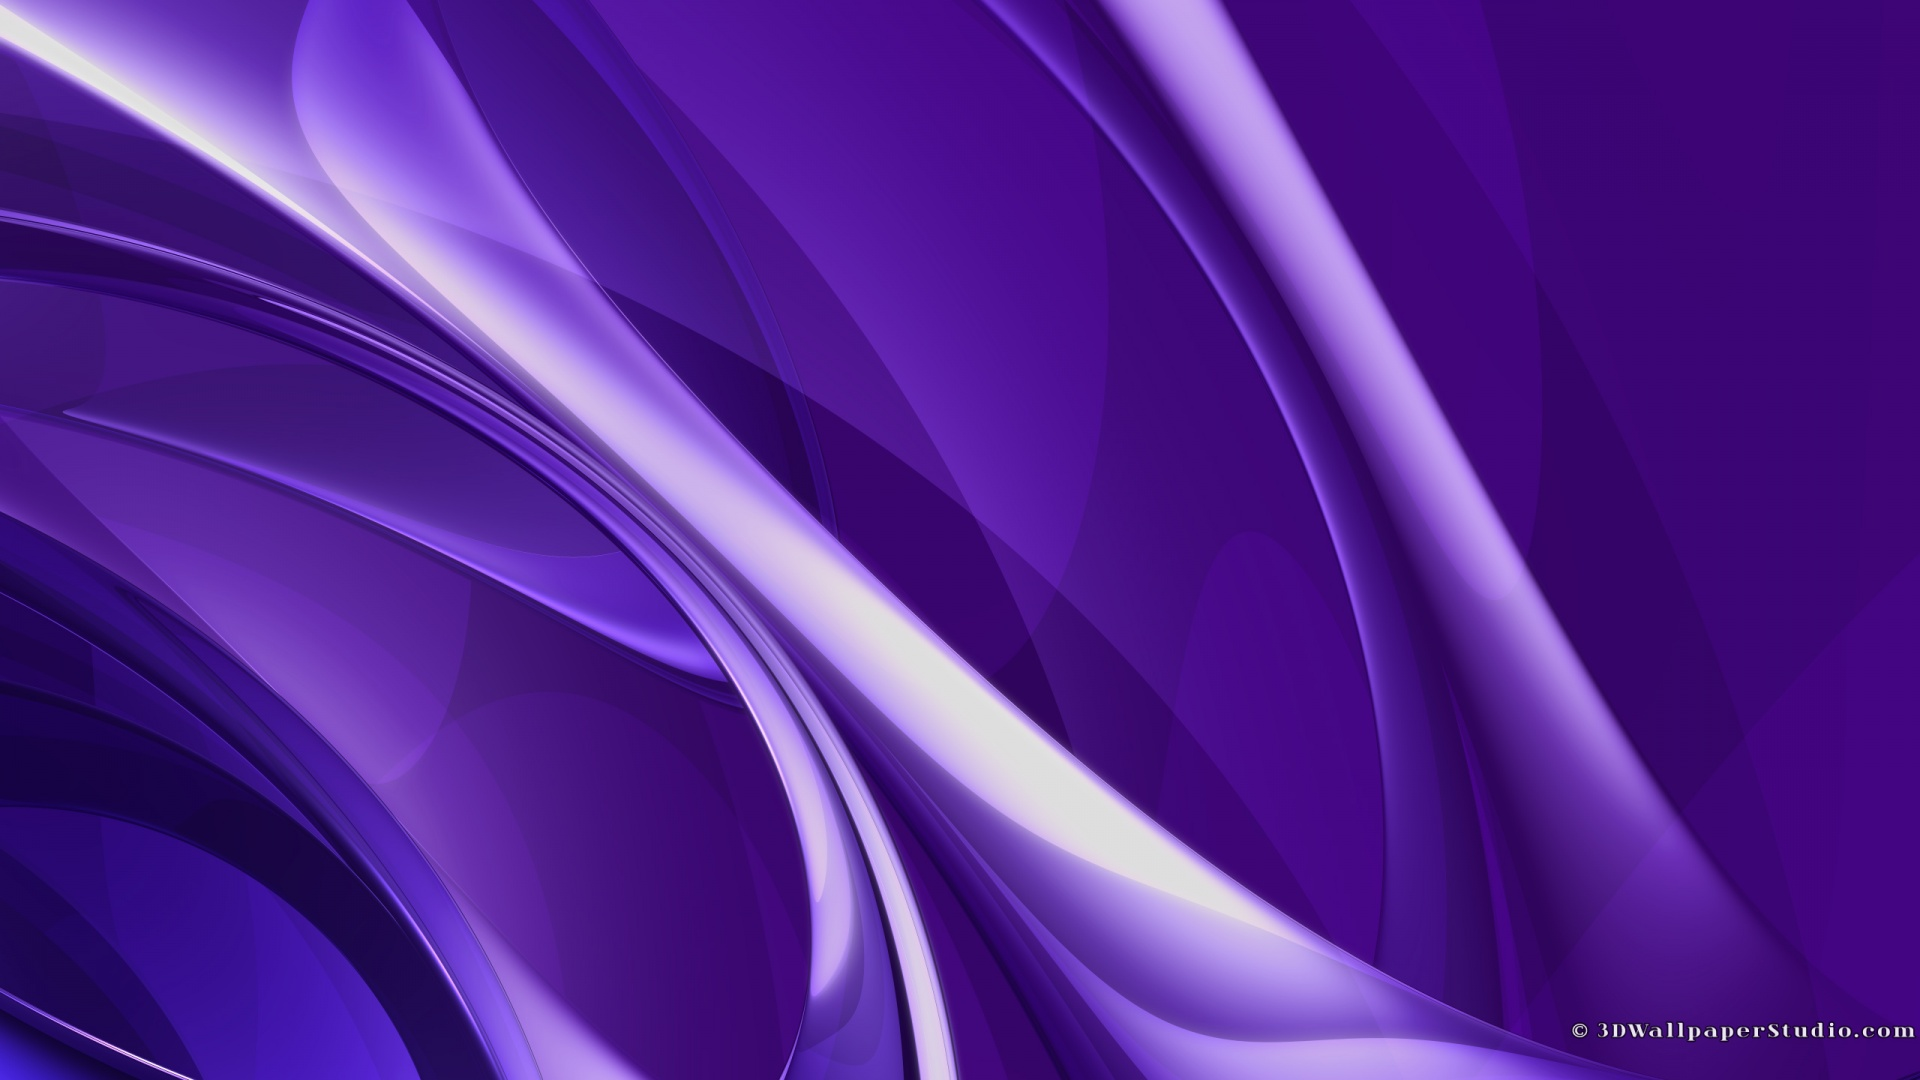 Smooth purple abstract wallpapers 1920x1080 1920x1080